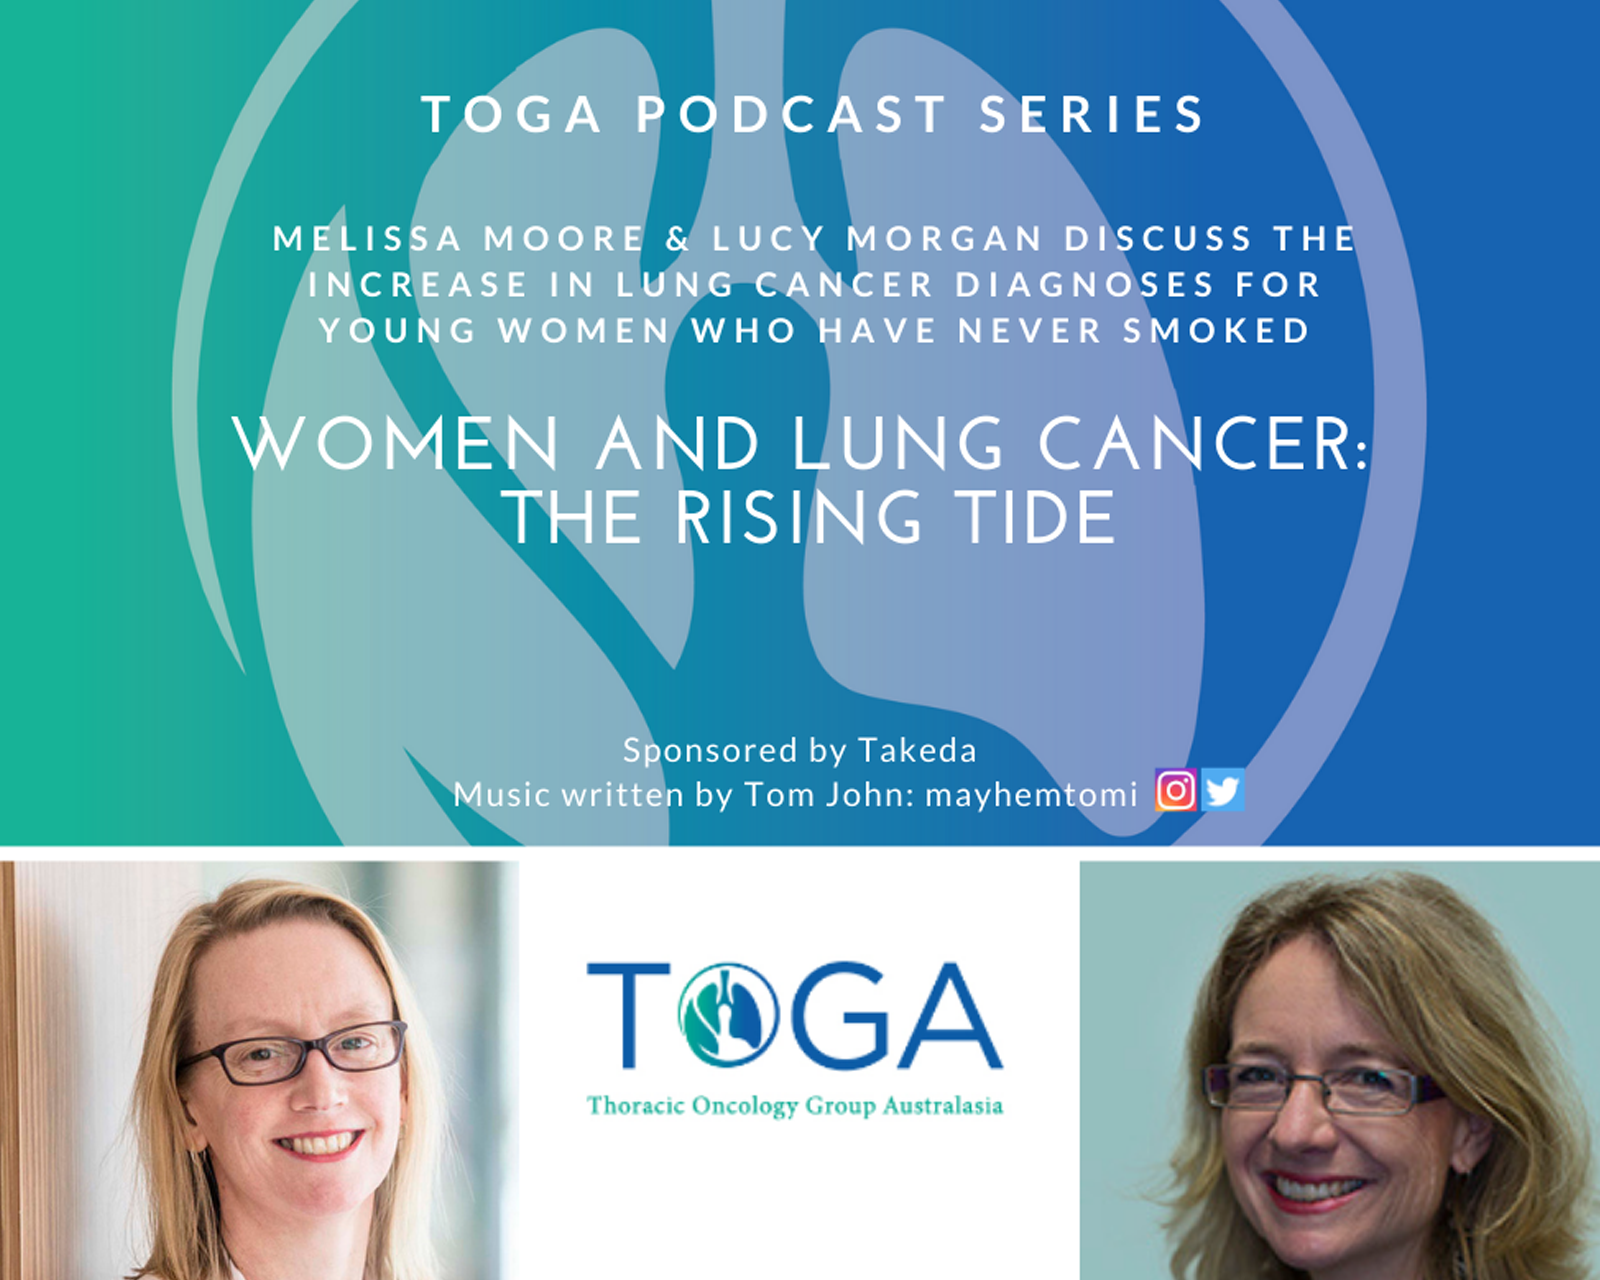 Women and lung cancer podcast